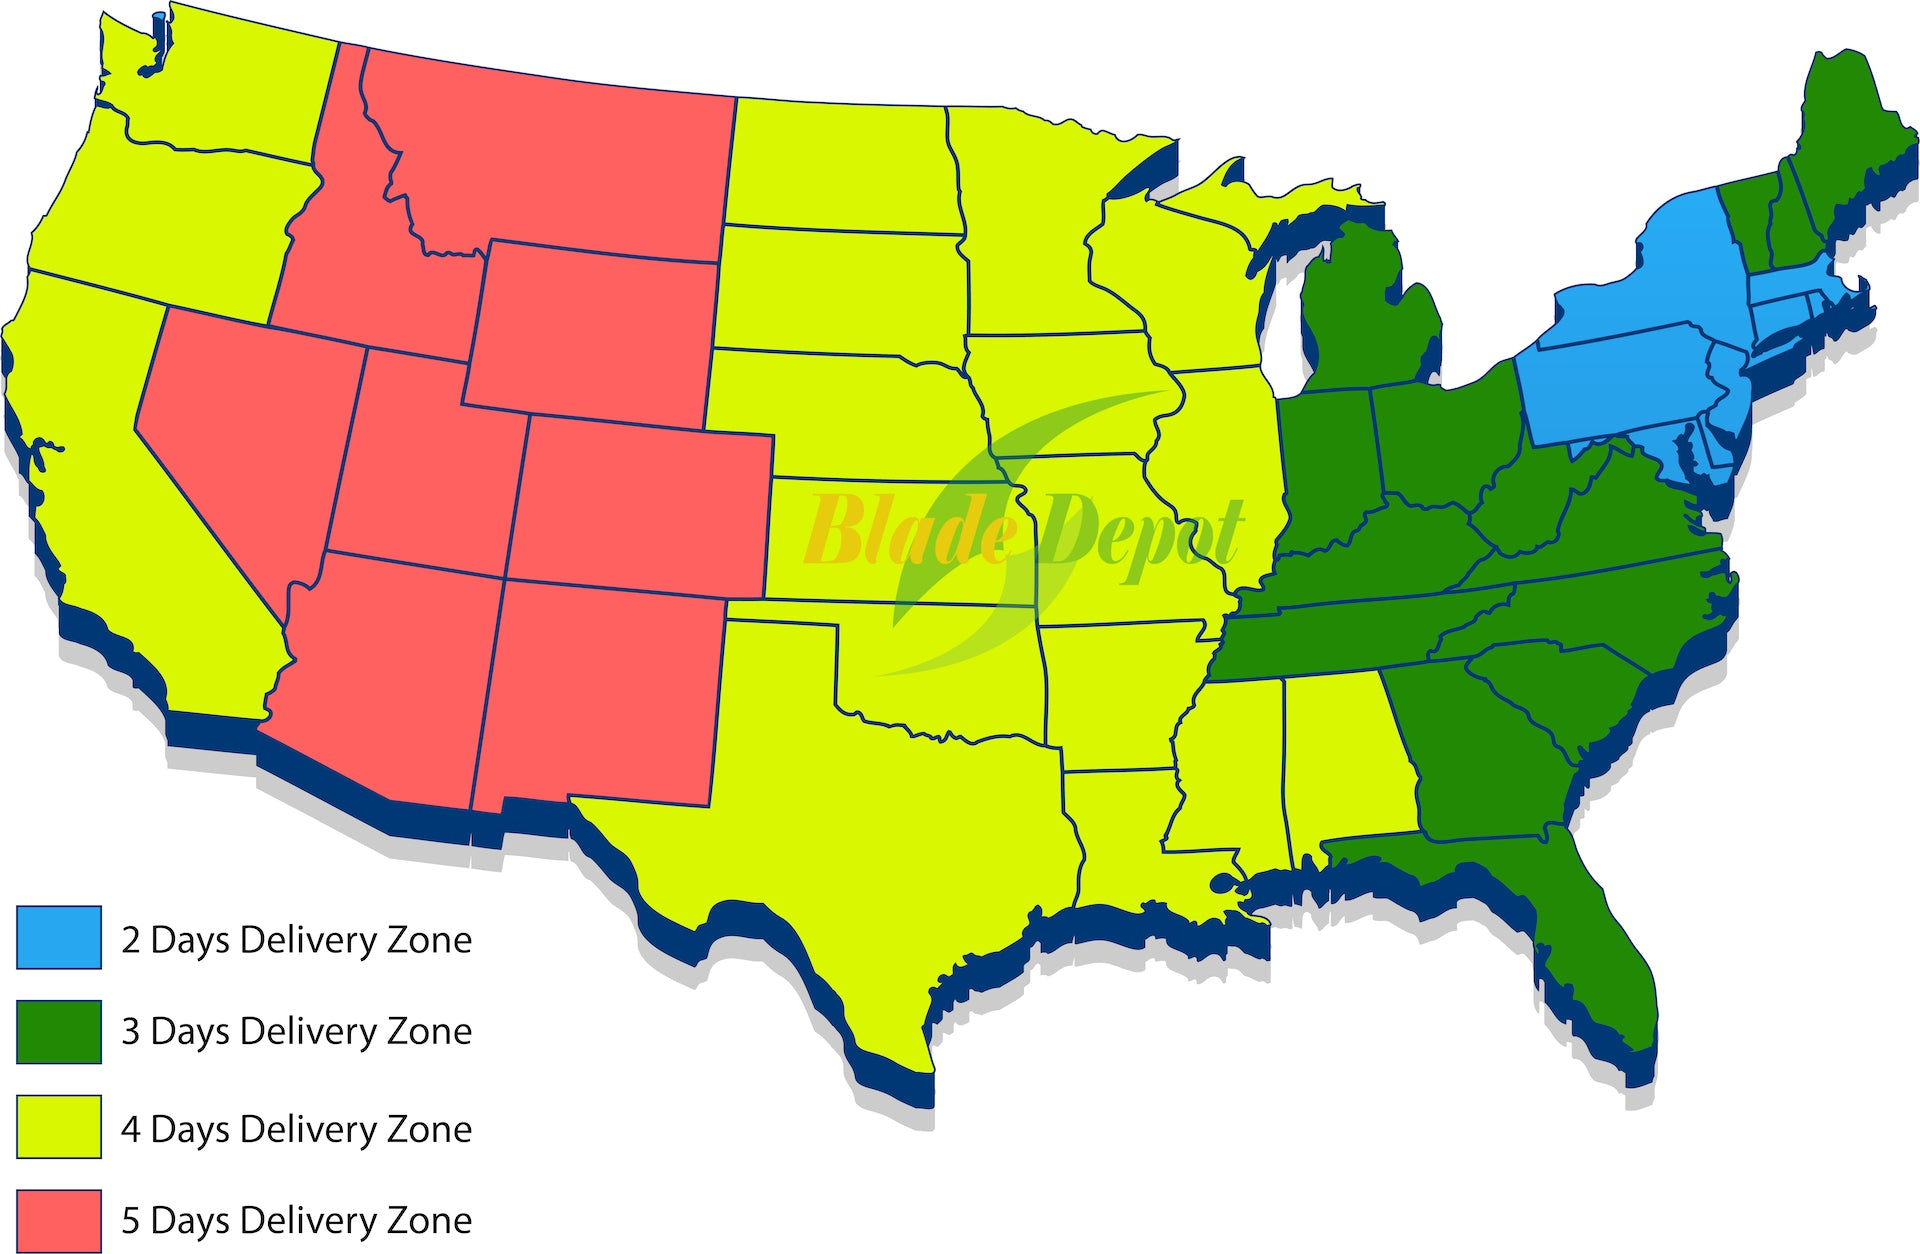 Blade Depot Store Shipping Zone